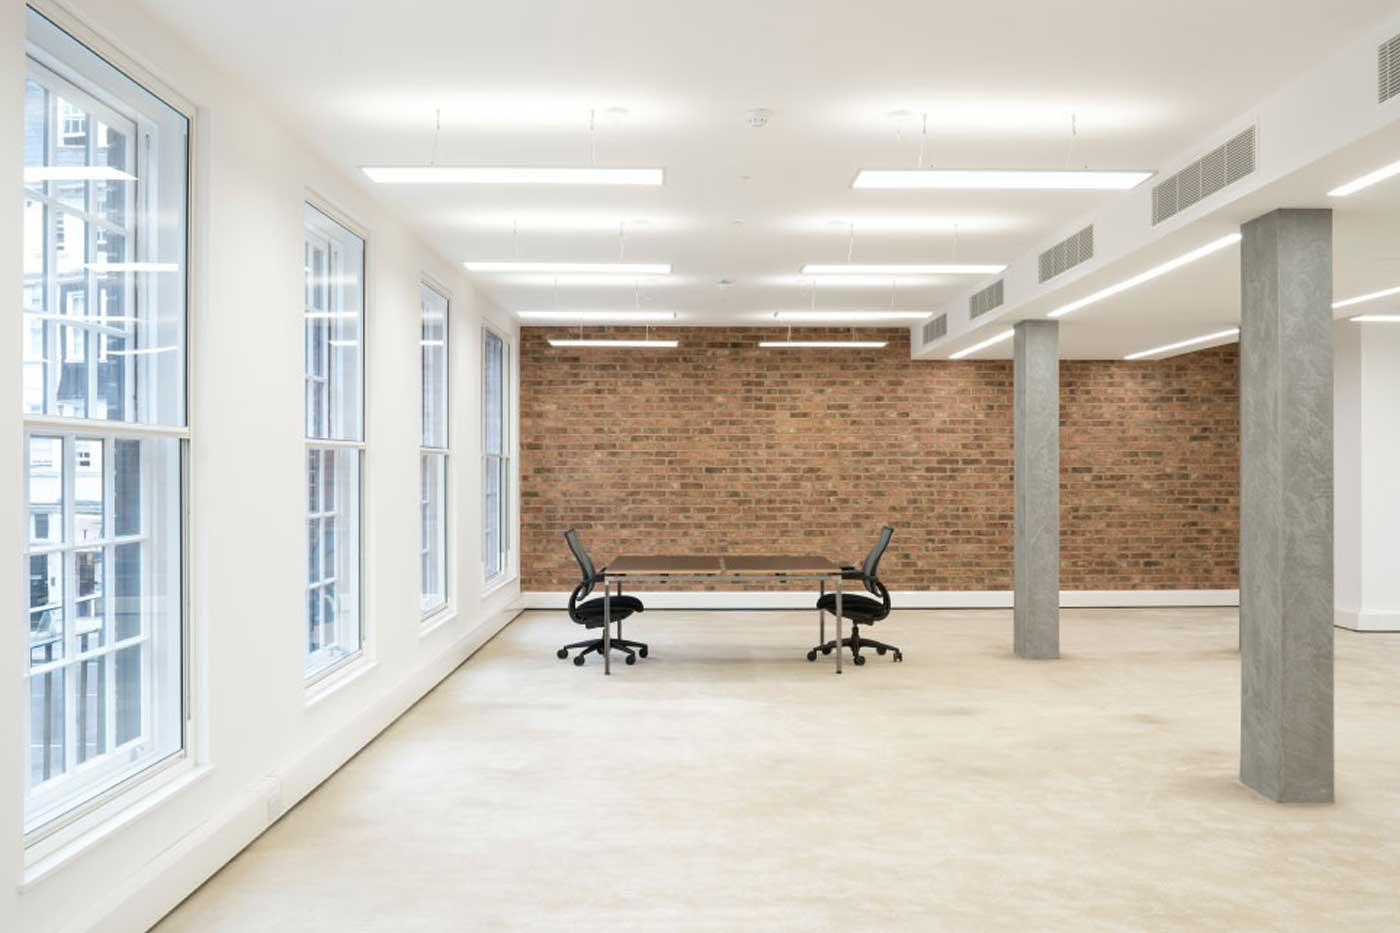 Office Space Planning & Design in London